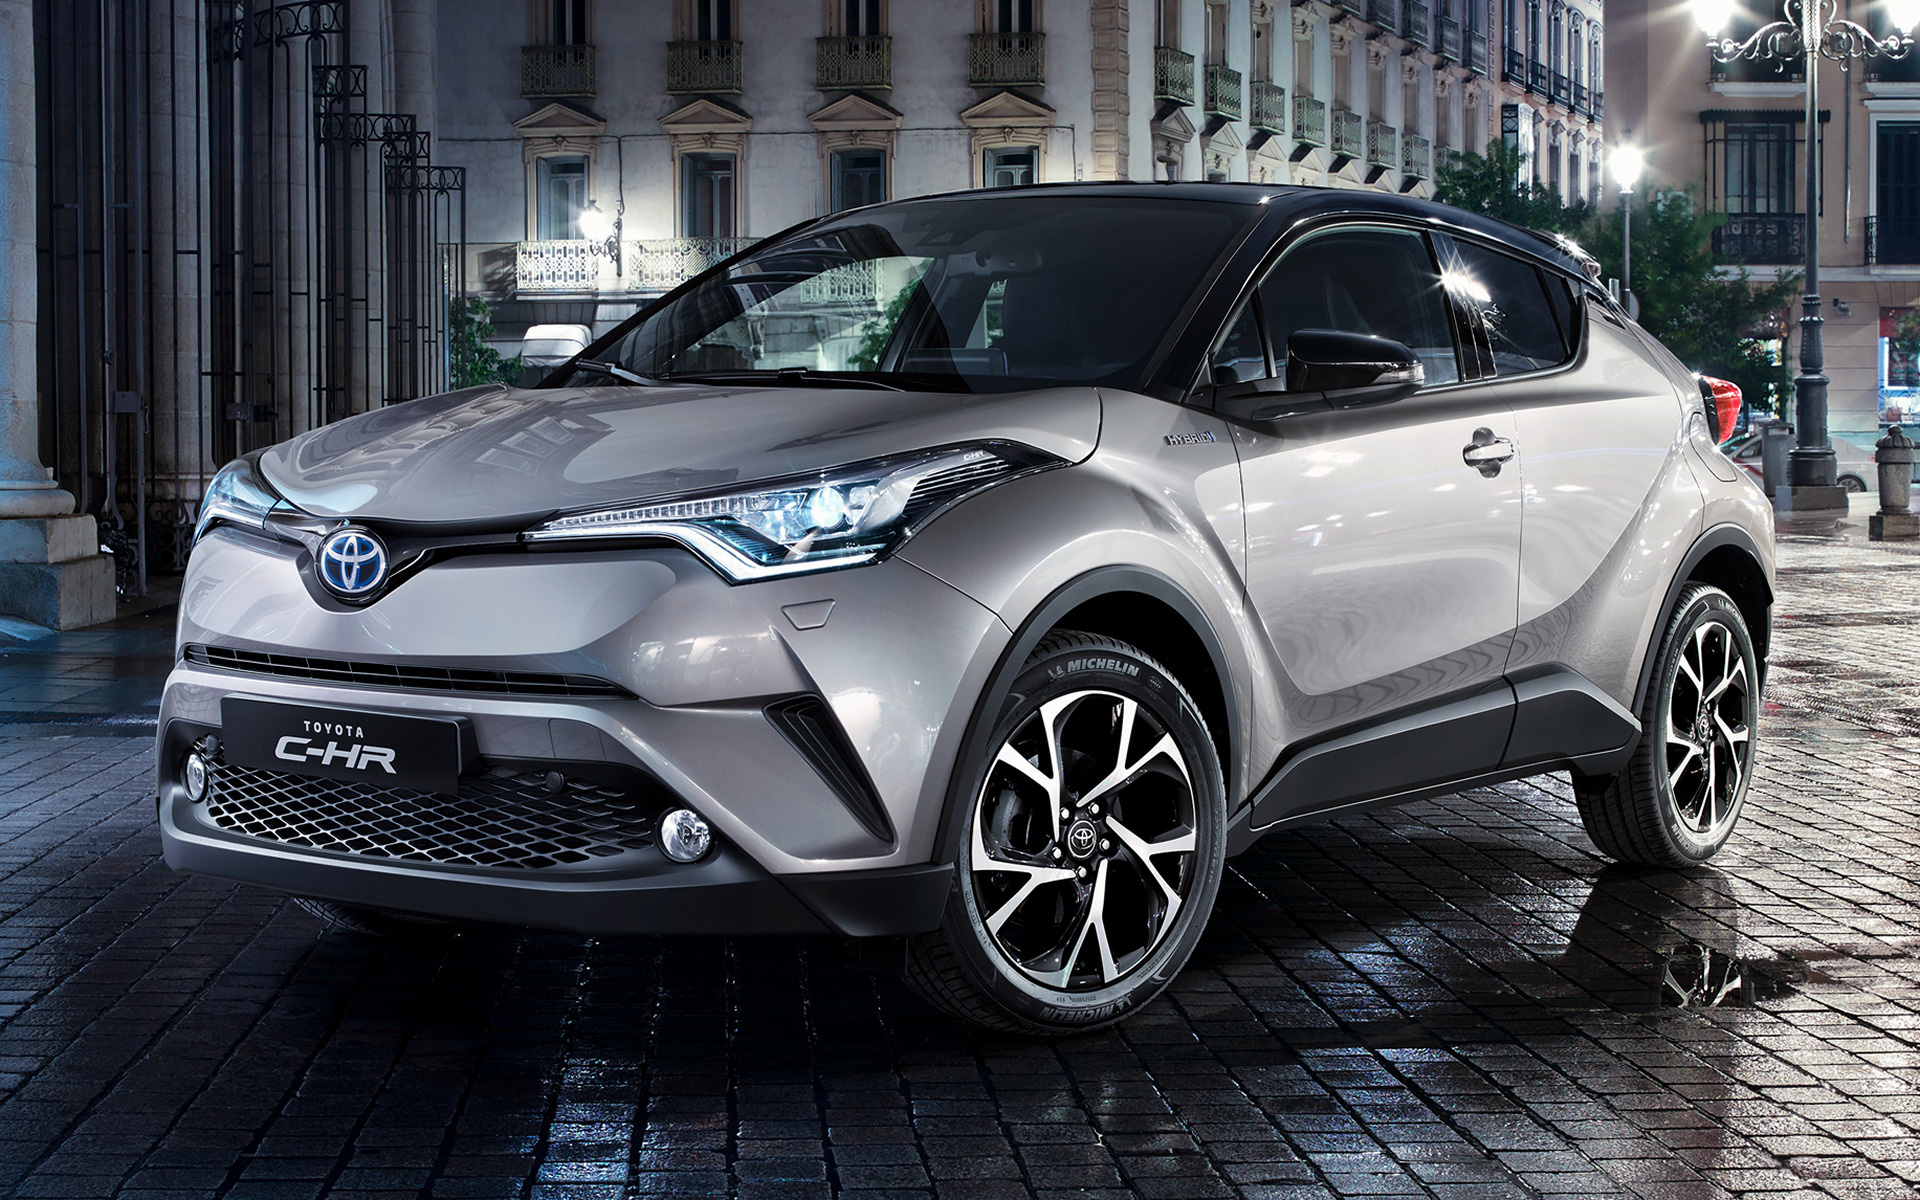 2016 Toyota C HR Hybrid   Wallpapers and HD Images Car Pixel 1920x1200